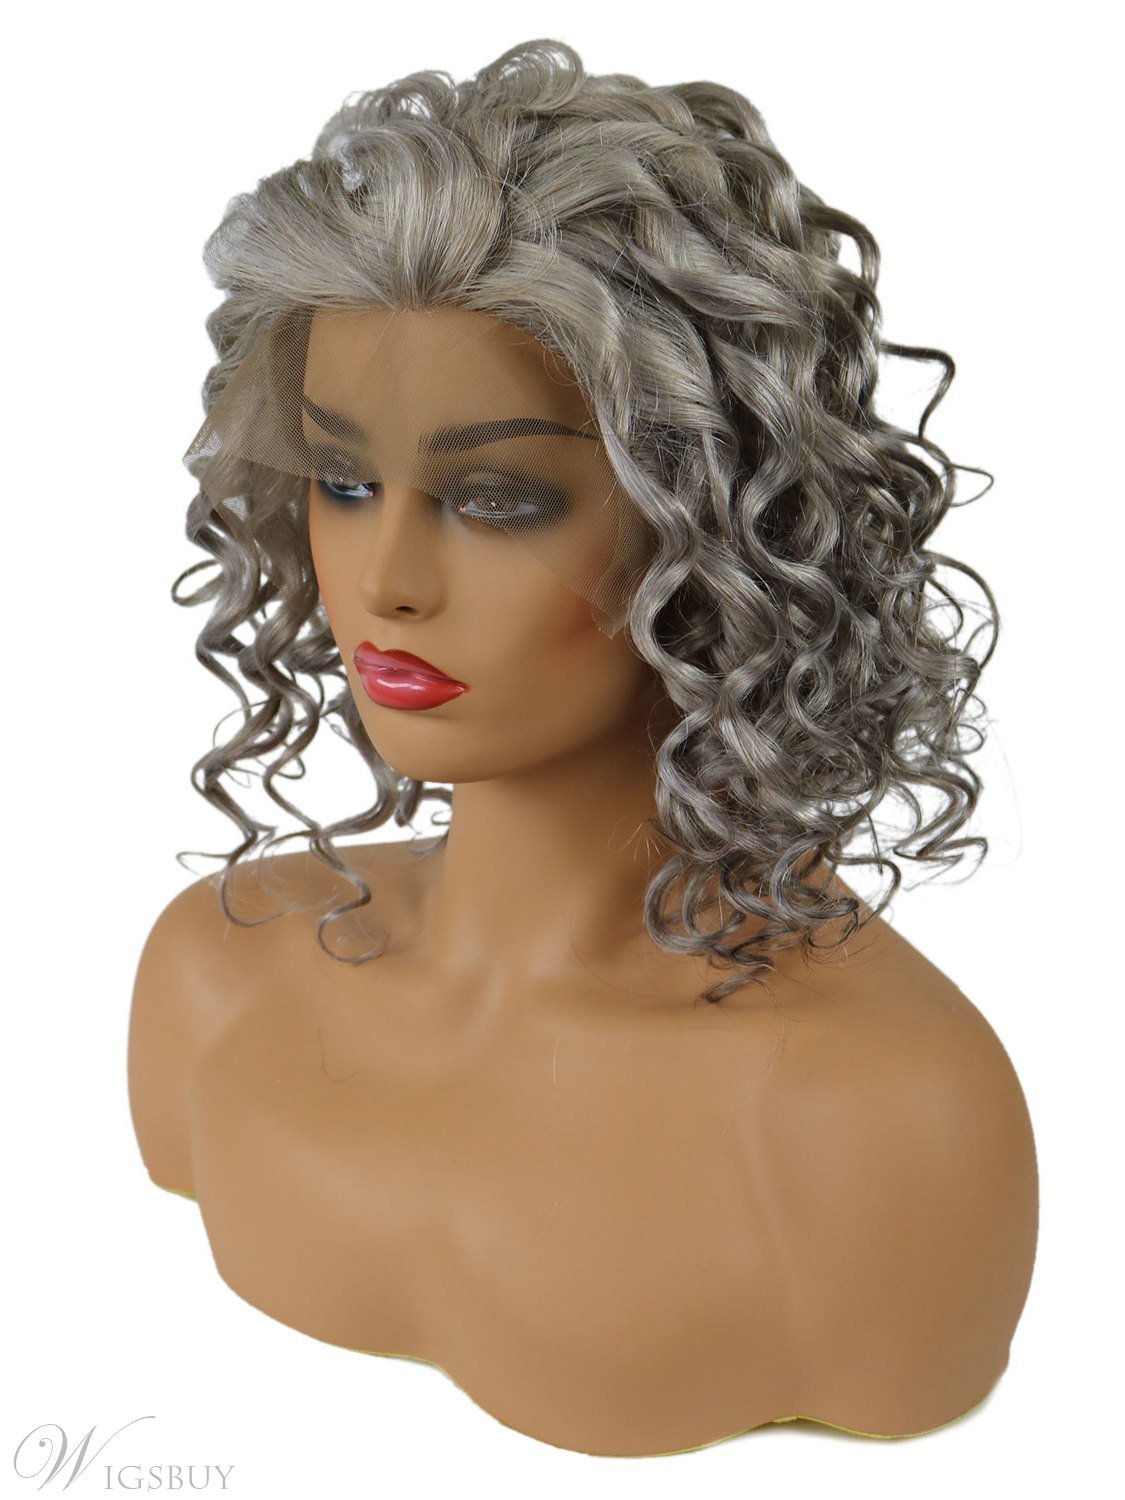 Salt and Pepper Hair Medium Length Human Hair Lace Front Curly Wigs 18 Inches